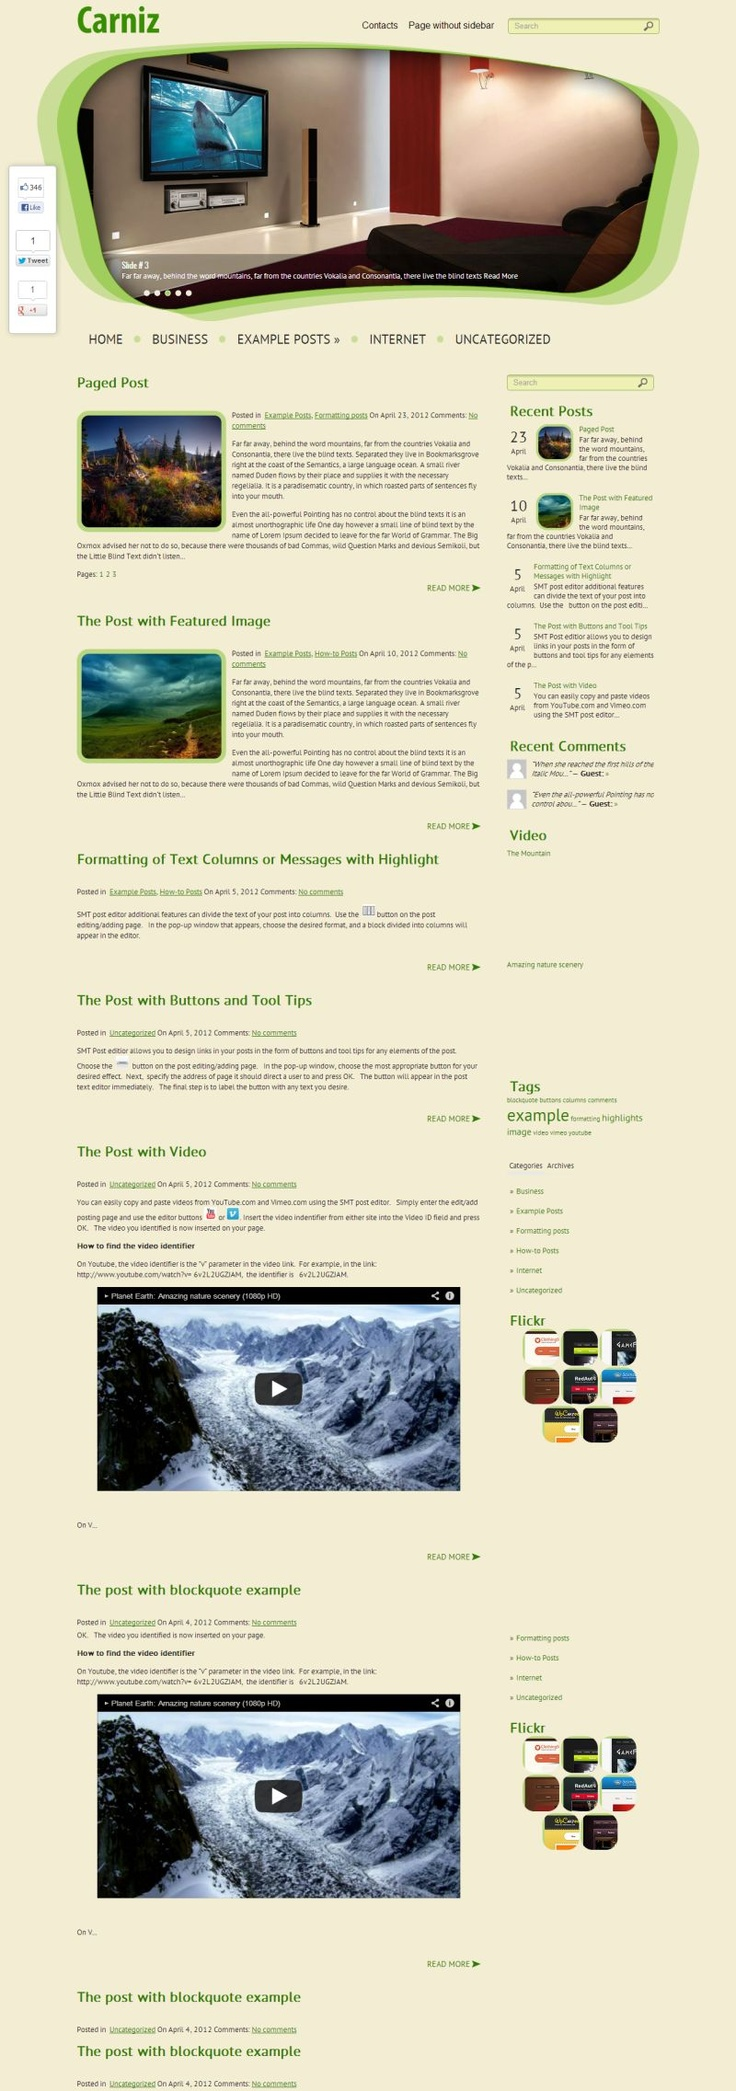 """""""Carniz"""" is one of the best stylish and #free clean themes for interior #WordPress blog. Good-looking design."""